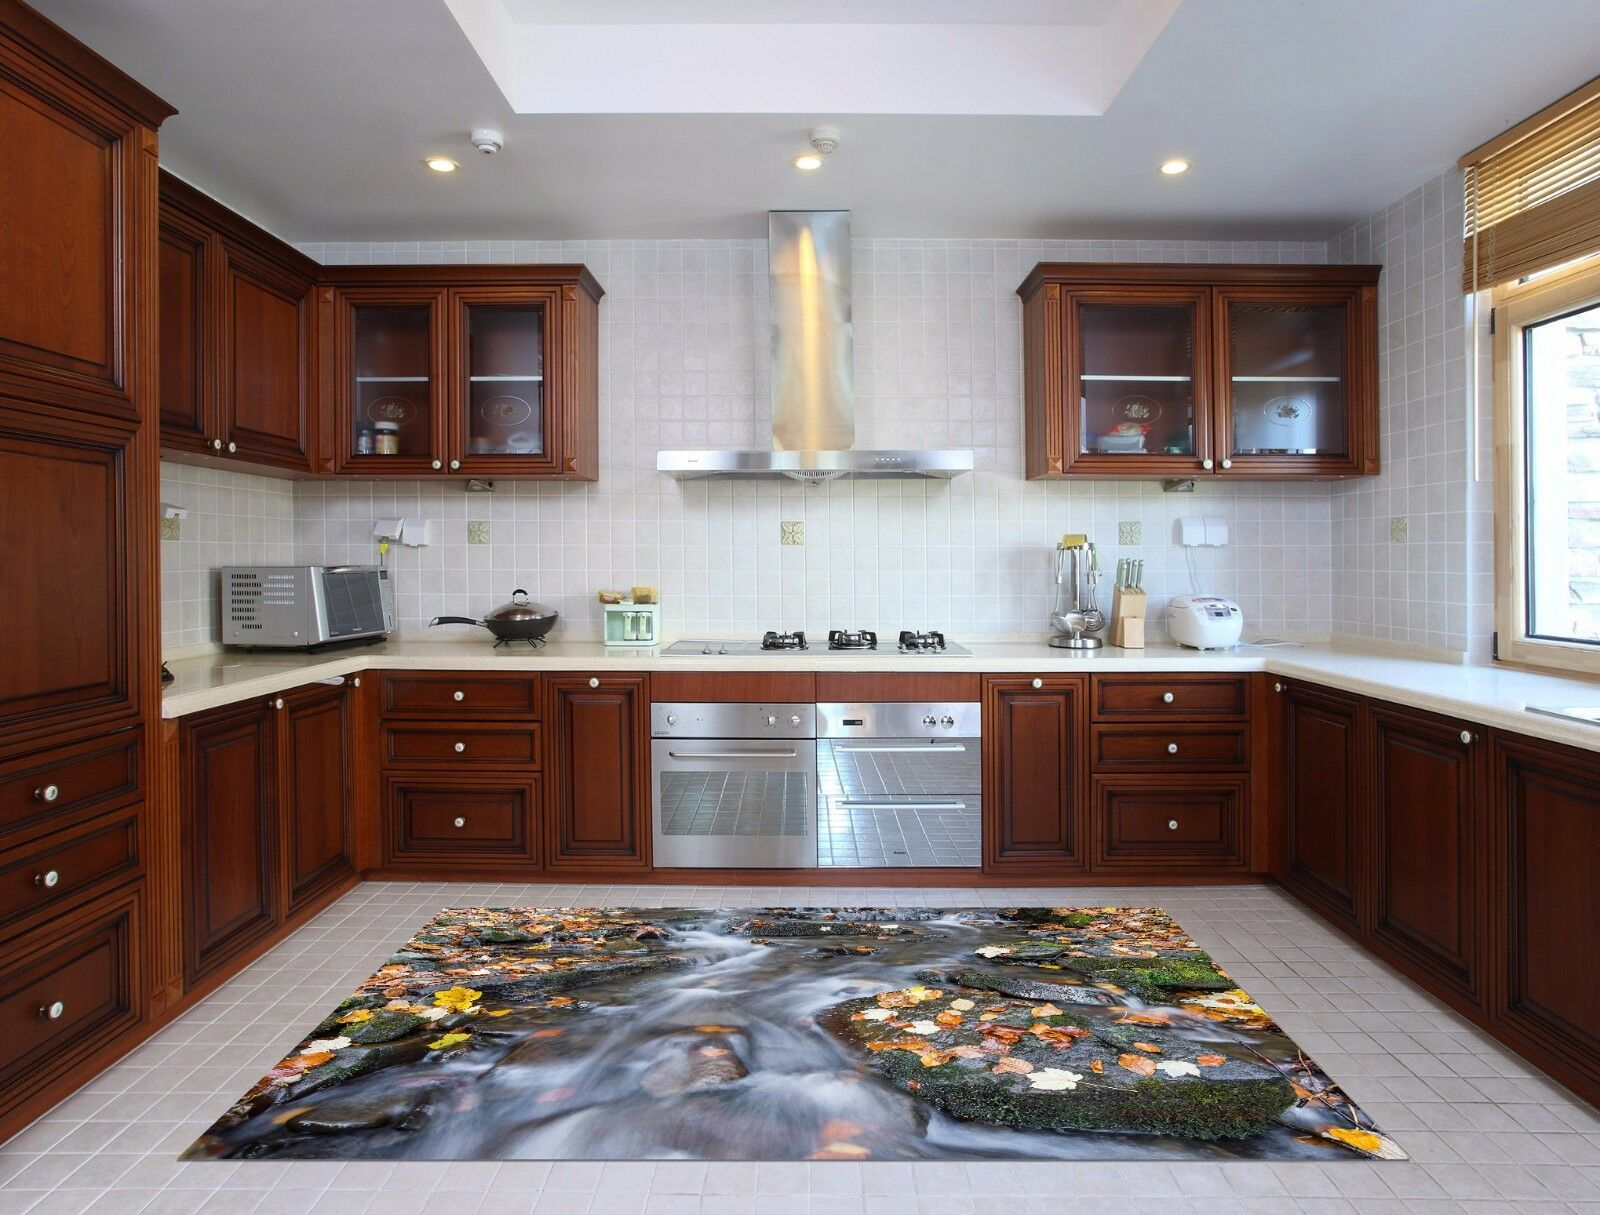 3D Stone Water 772 Kitchen Mat Floor Murals Wall Print Wall Deco UK Carly